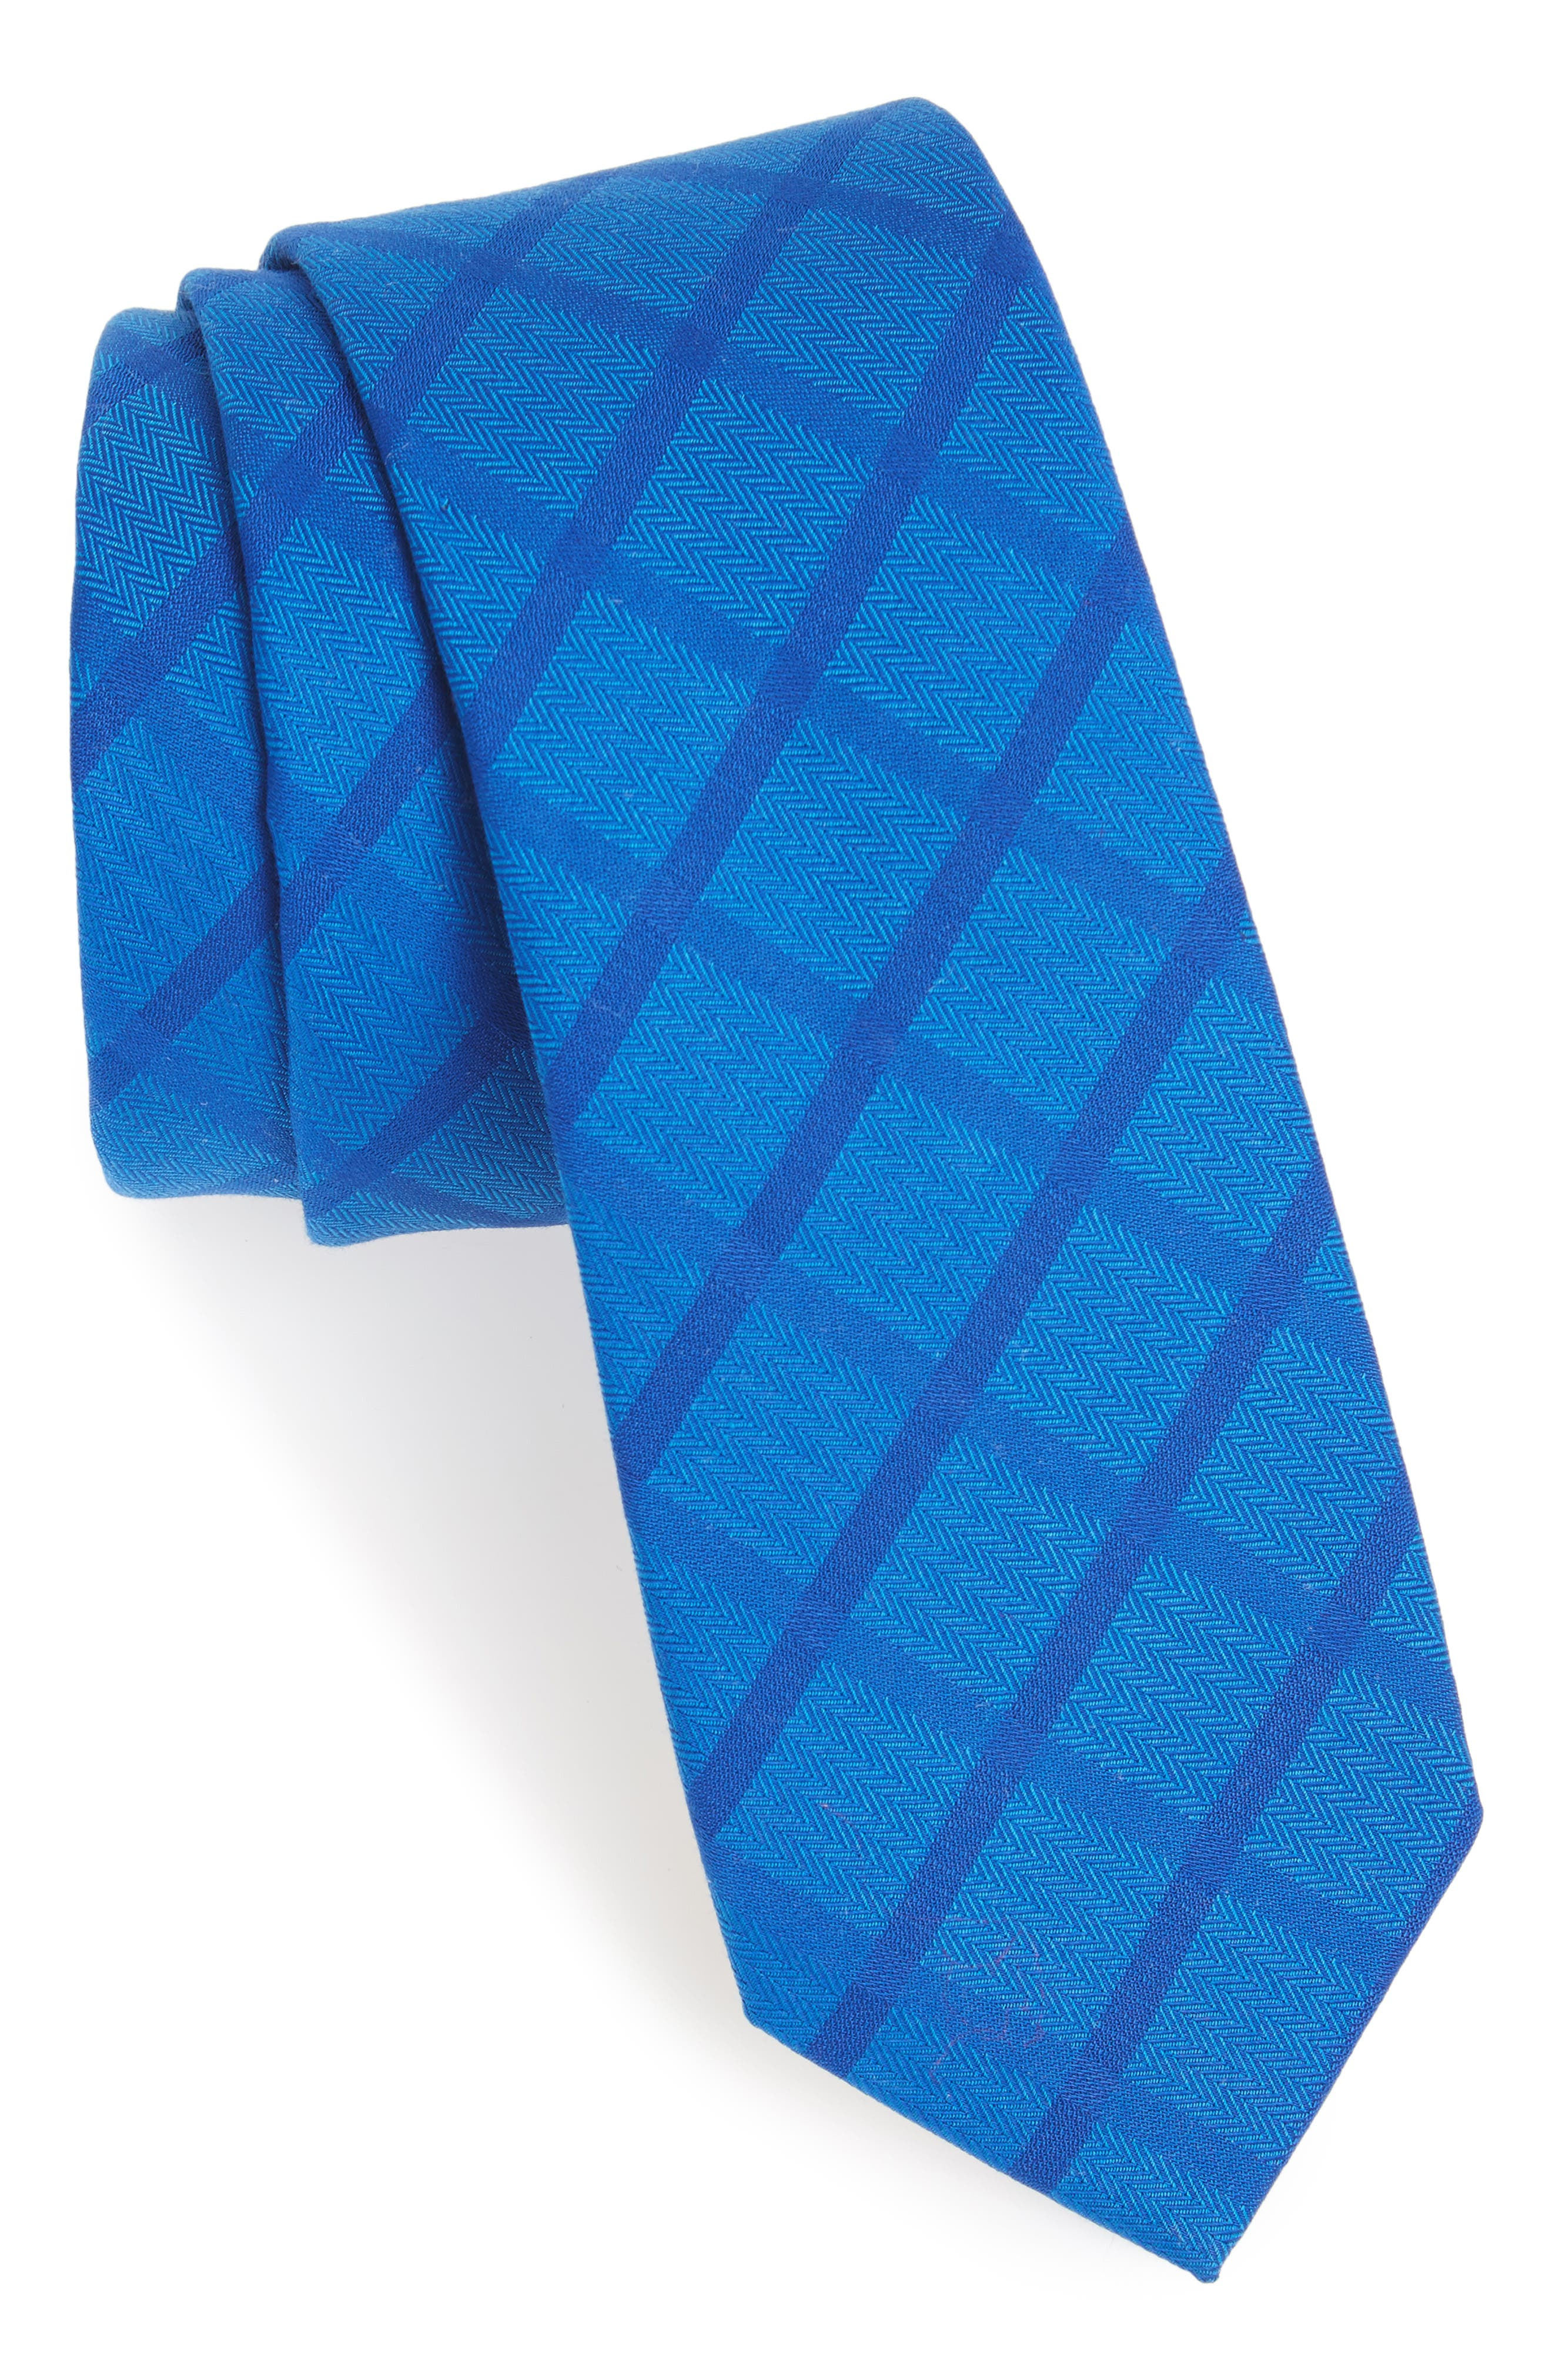 Madison Grid Tie,                         Main,                         color,